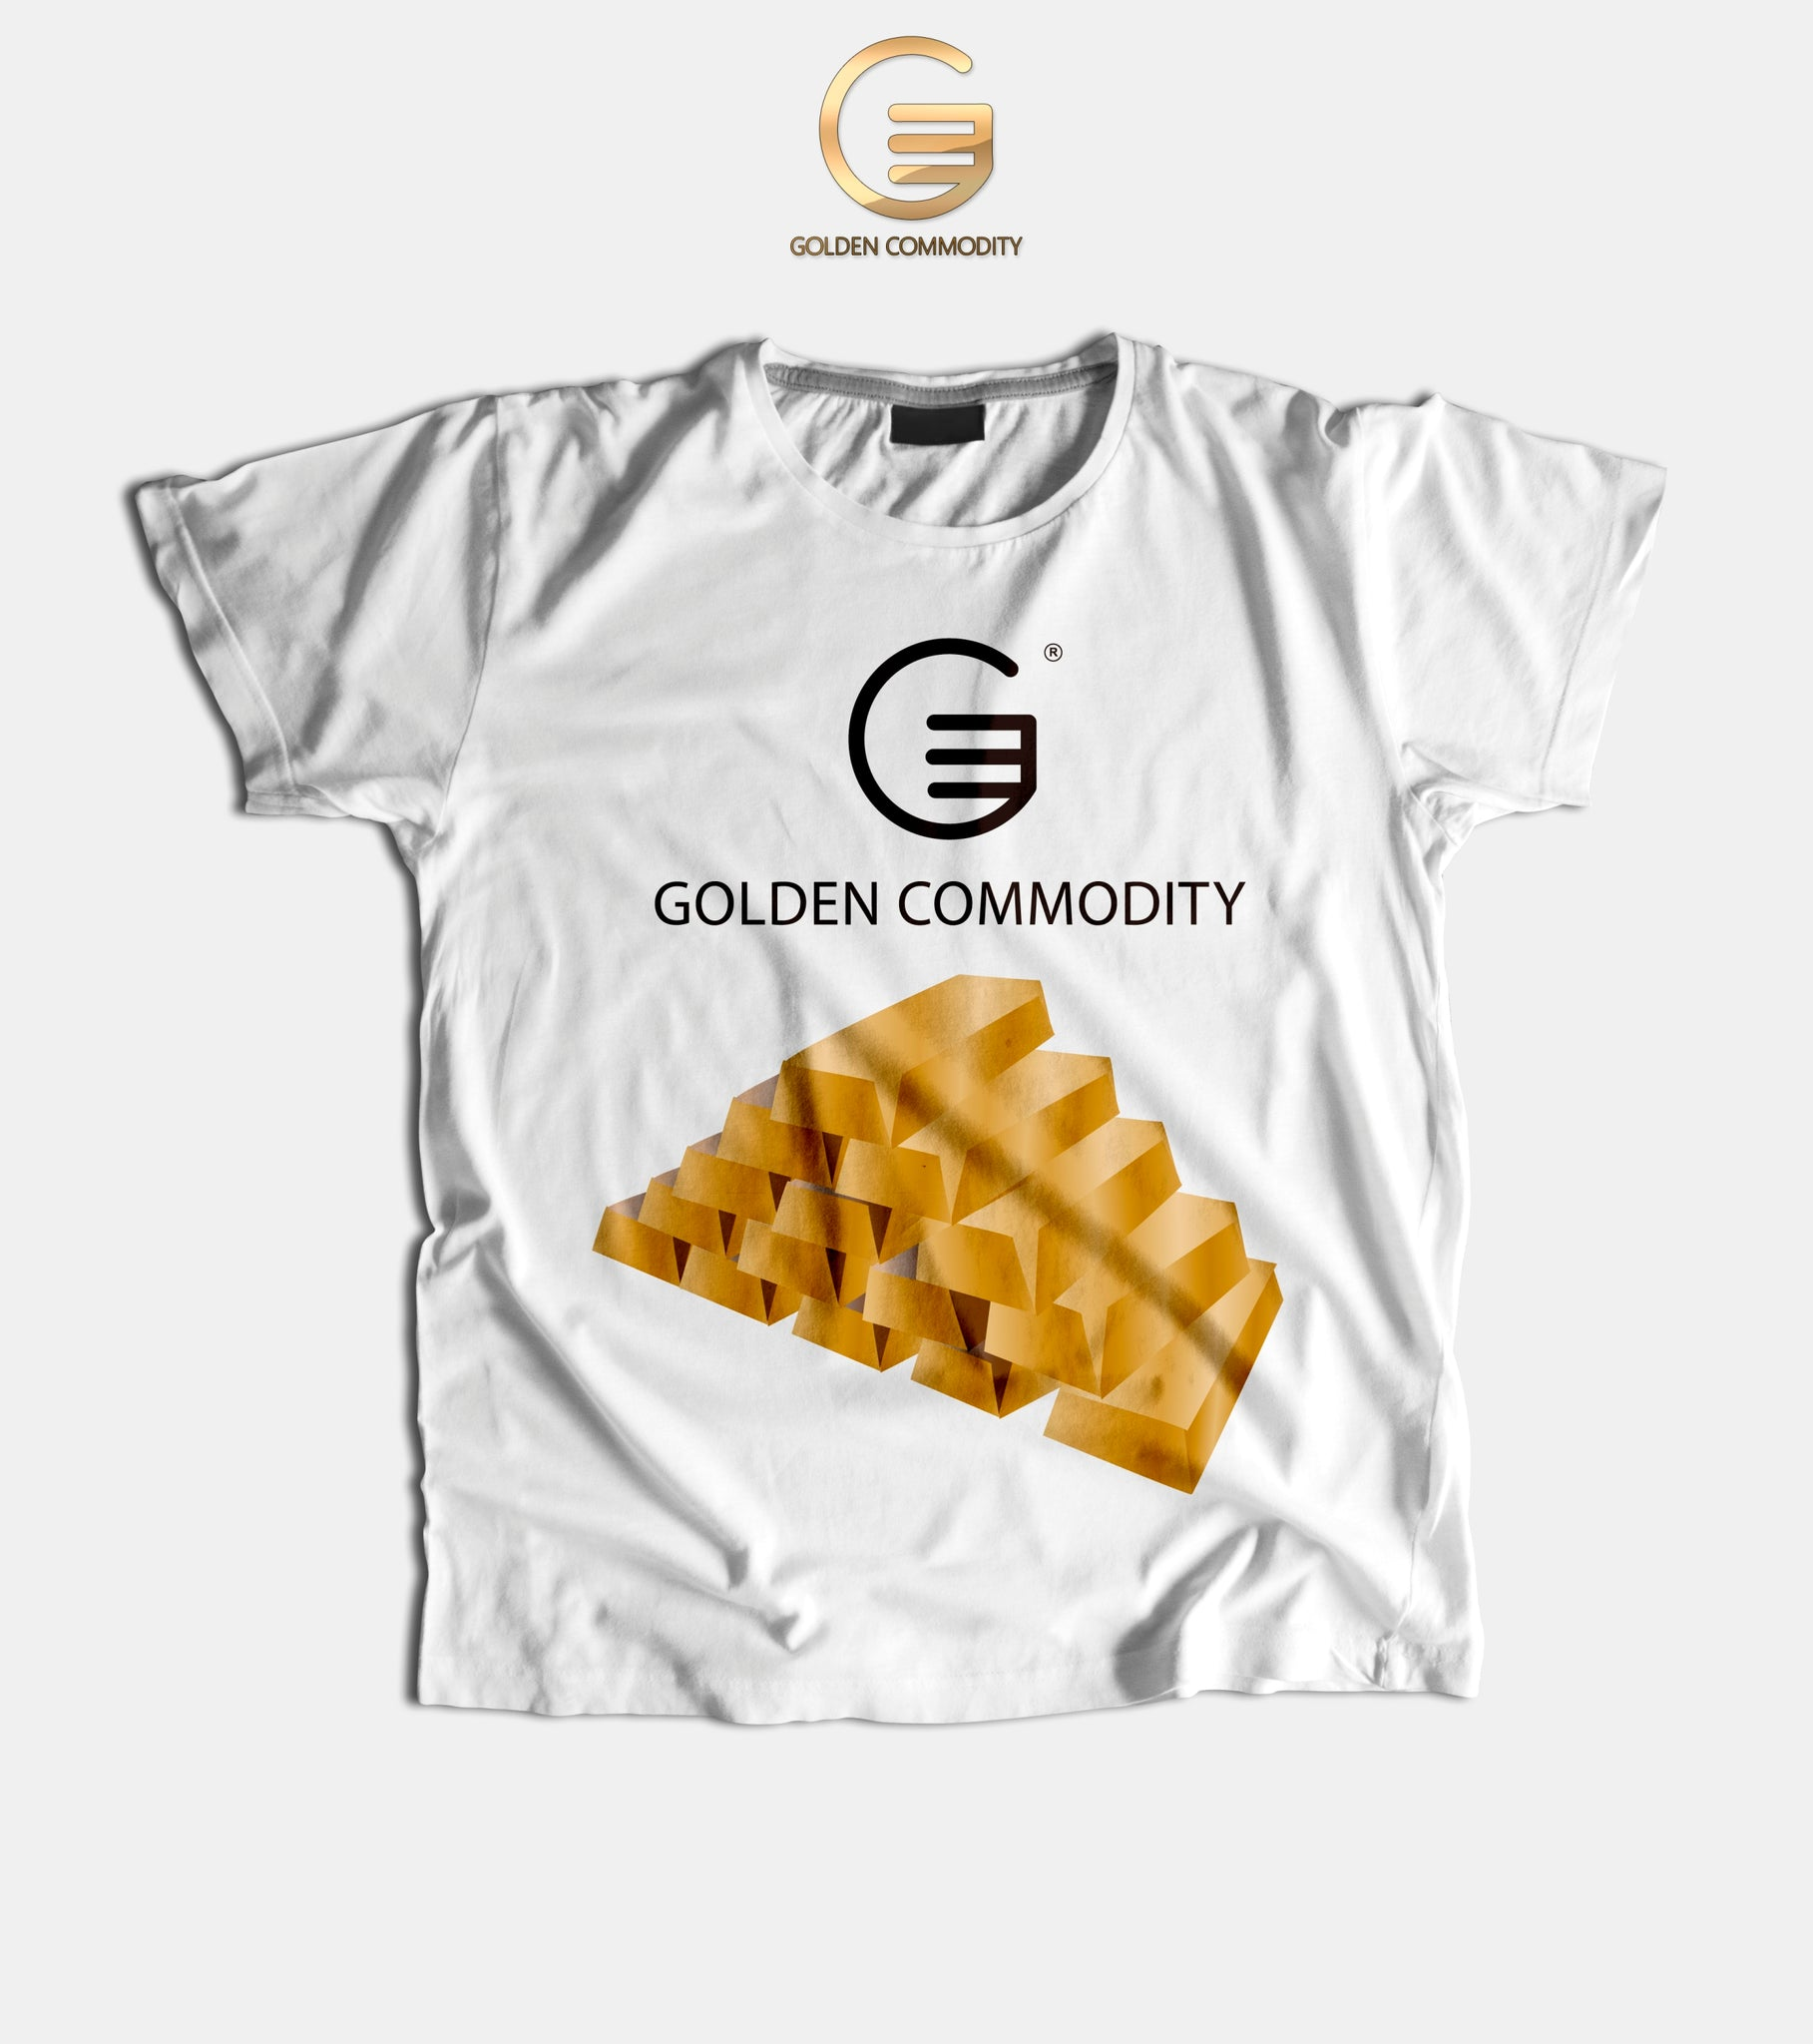 Golden Commodity Bullion Bars Men's T-Shirts